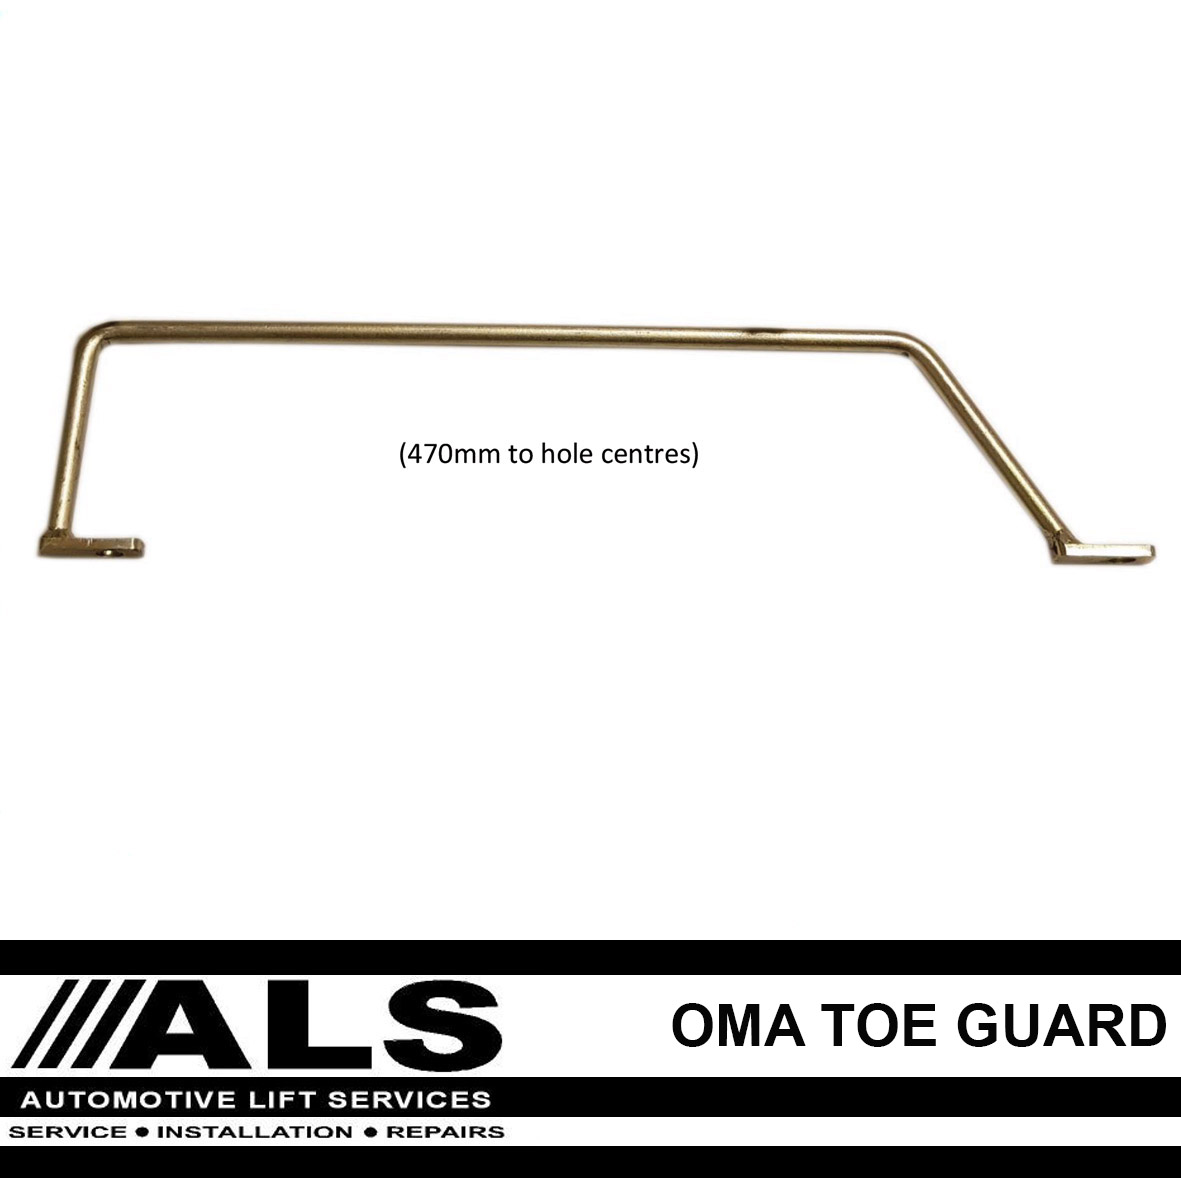 https://www.automotiveliftservices.co.uk/wp-content/uploads/2018/10/OMA-TOE-GUARD-B0612.jpg